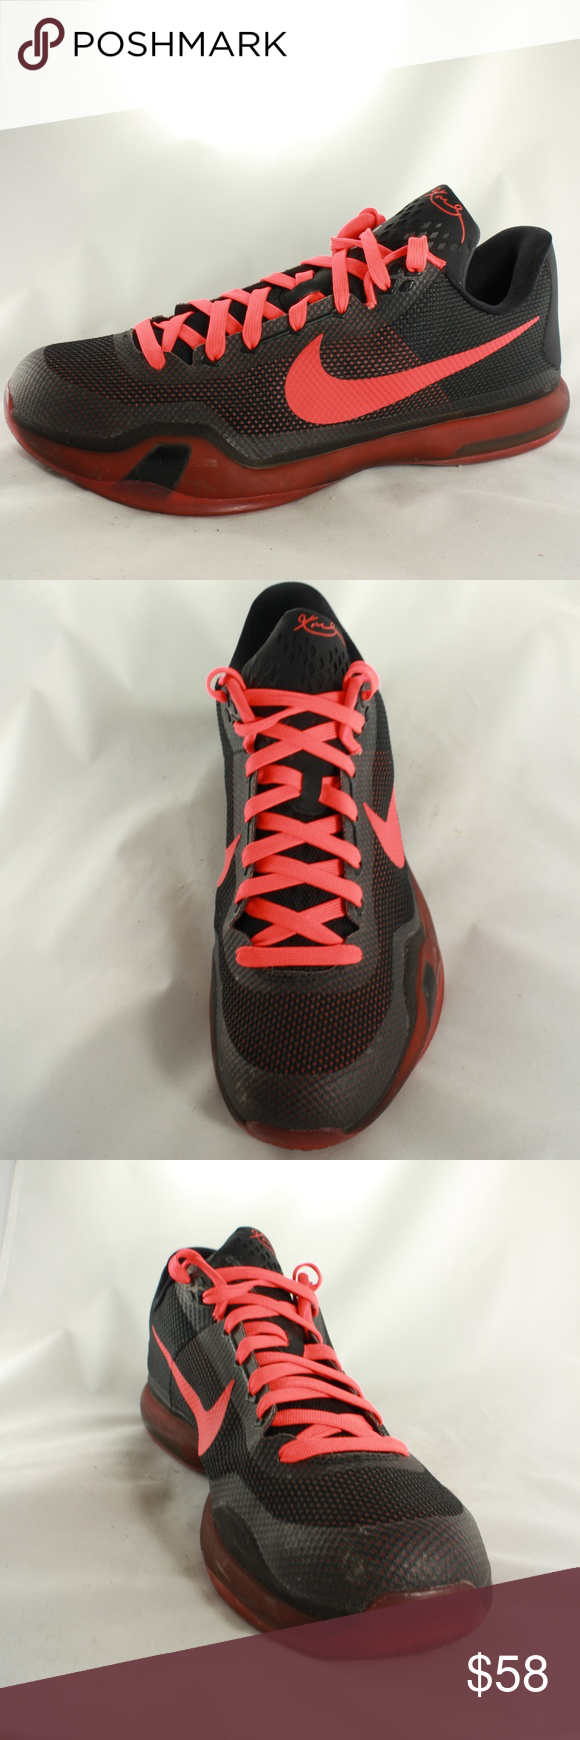 Nike Air Zoom Kobe Bryant X 10 Low Black Crimson (With